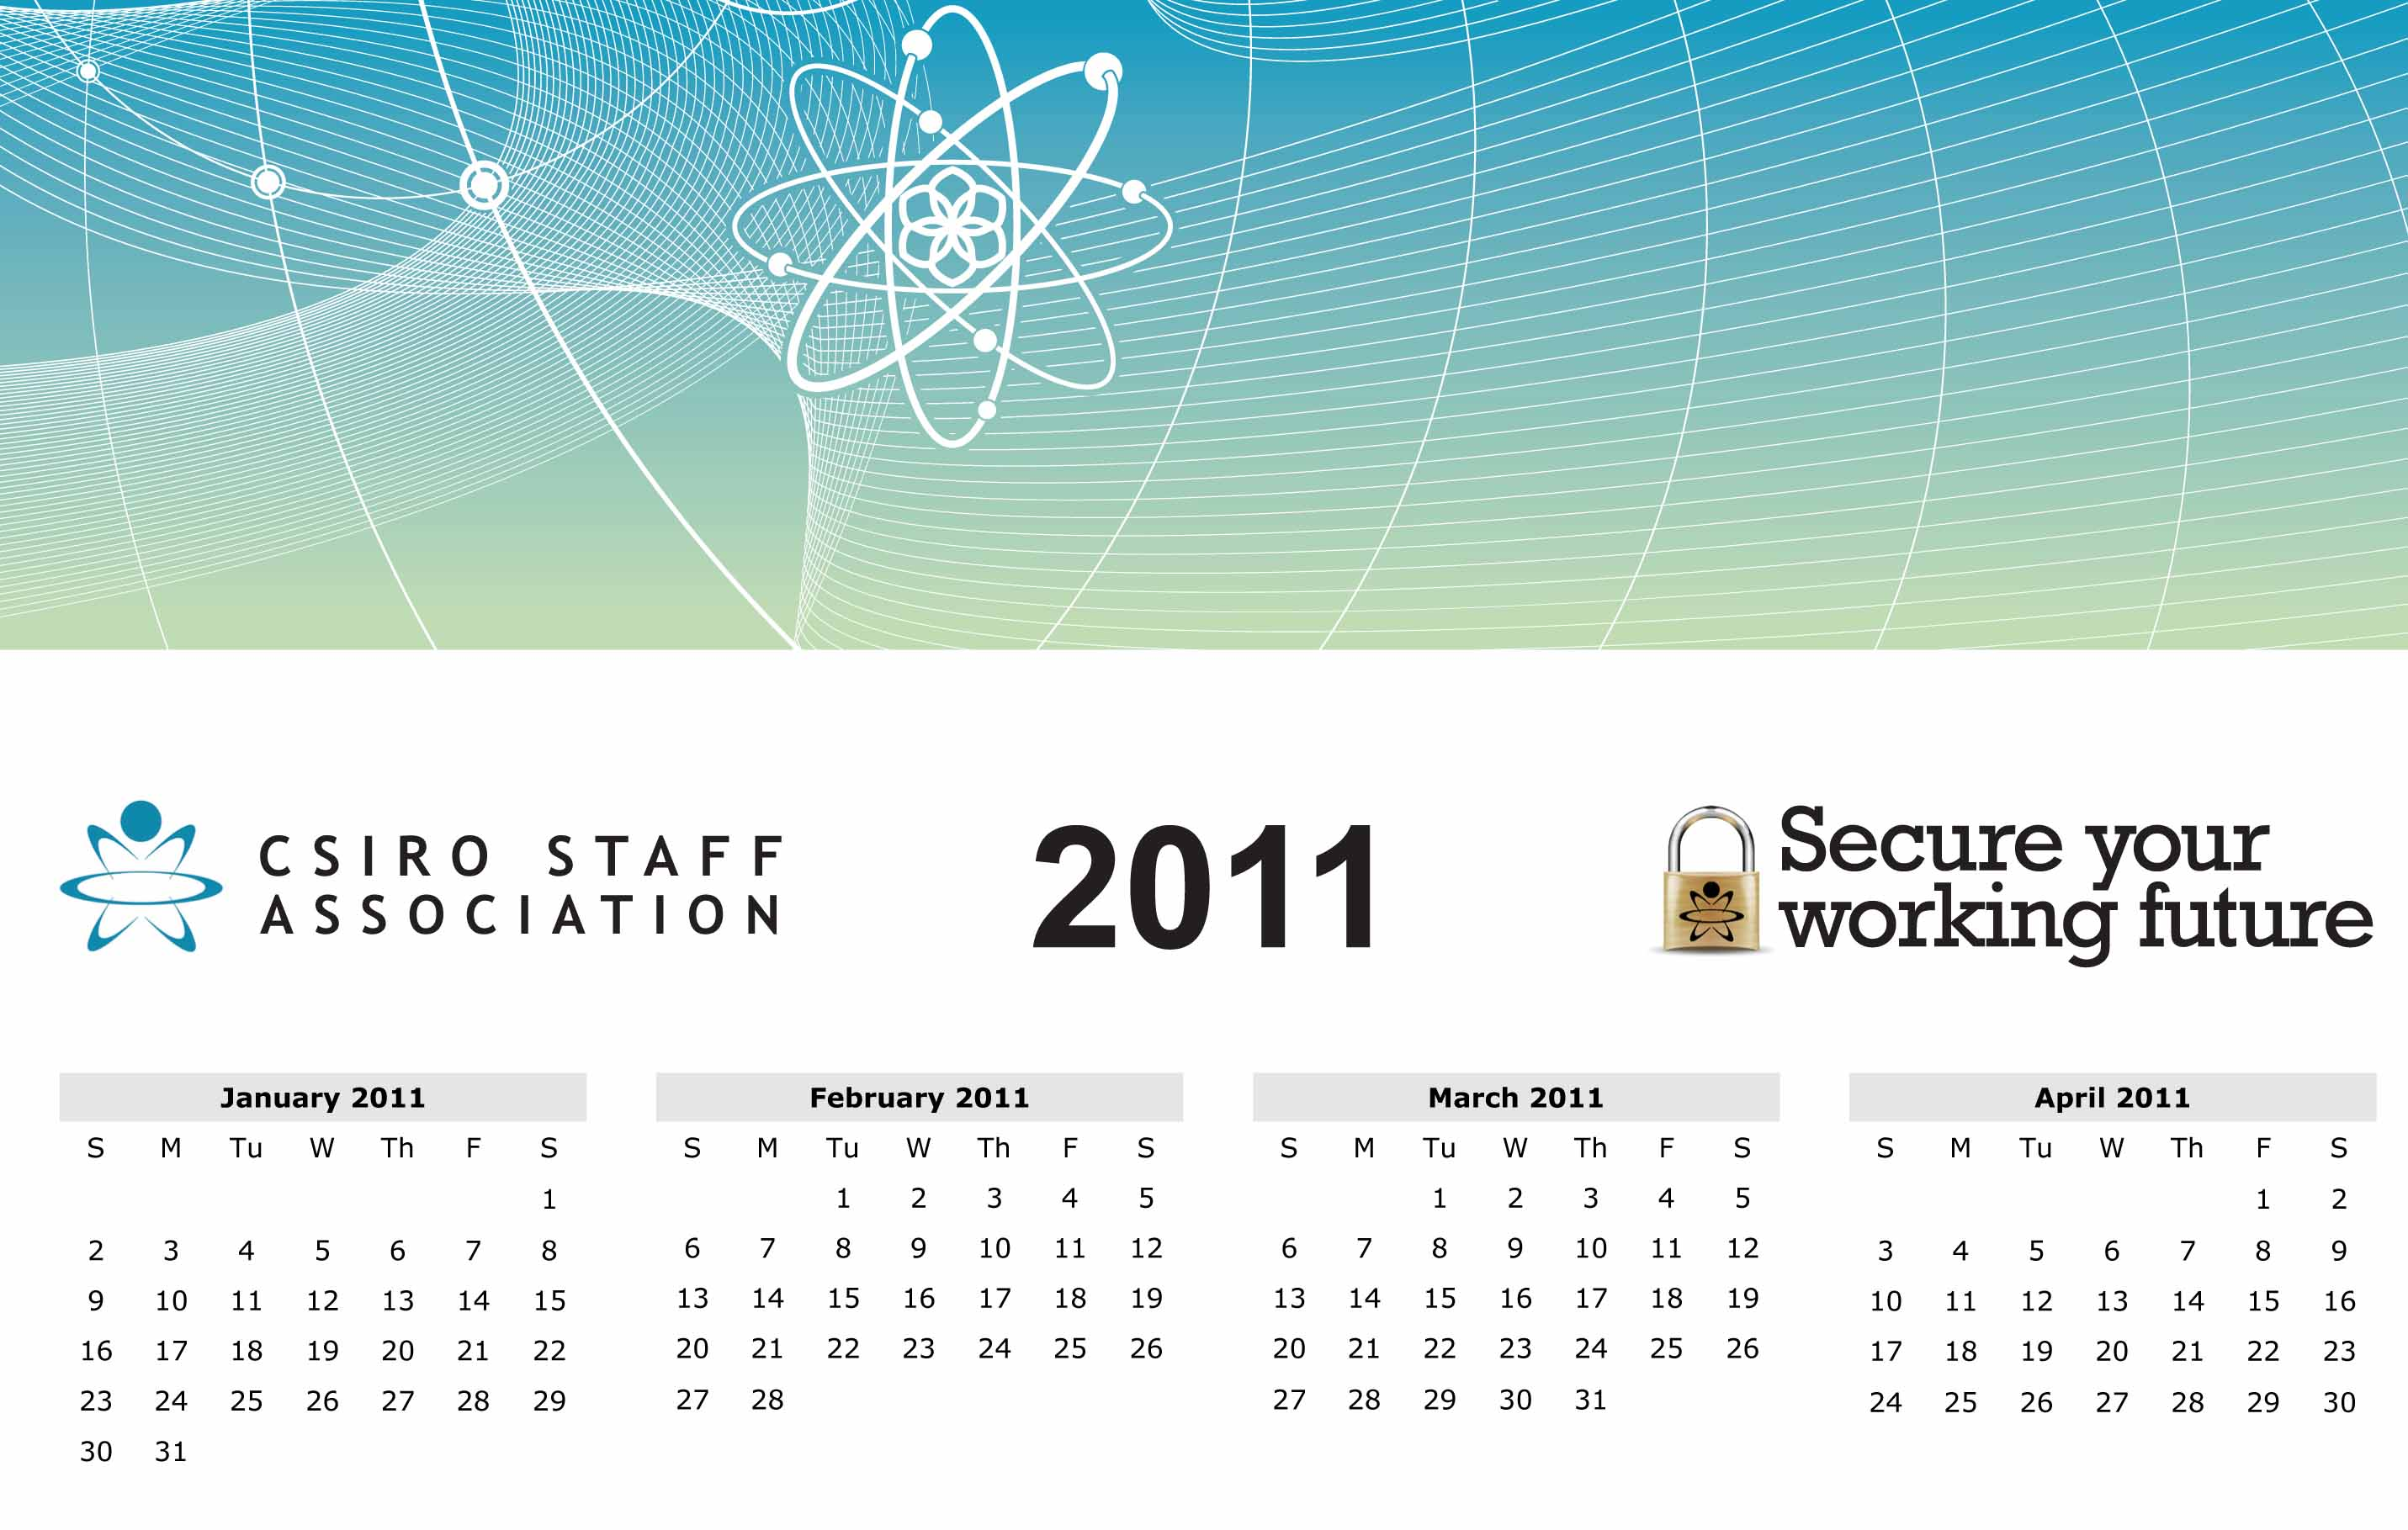 February 2011 Calendar Pdf. 2011 calendar – useful dates,